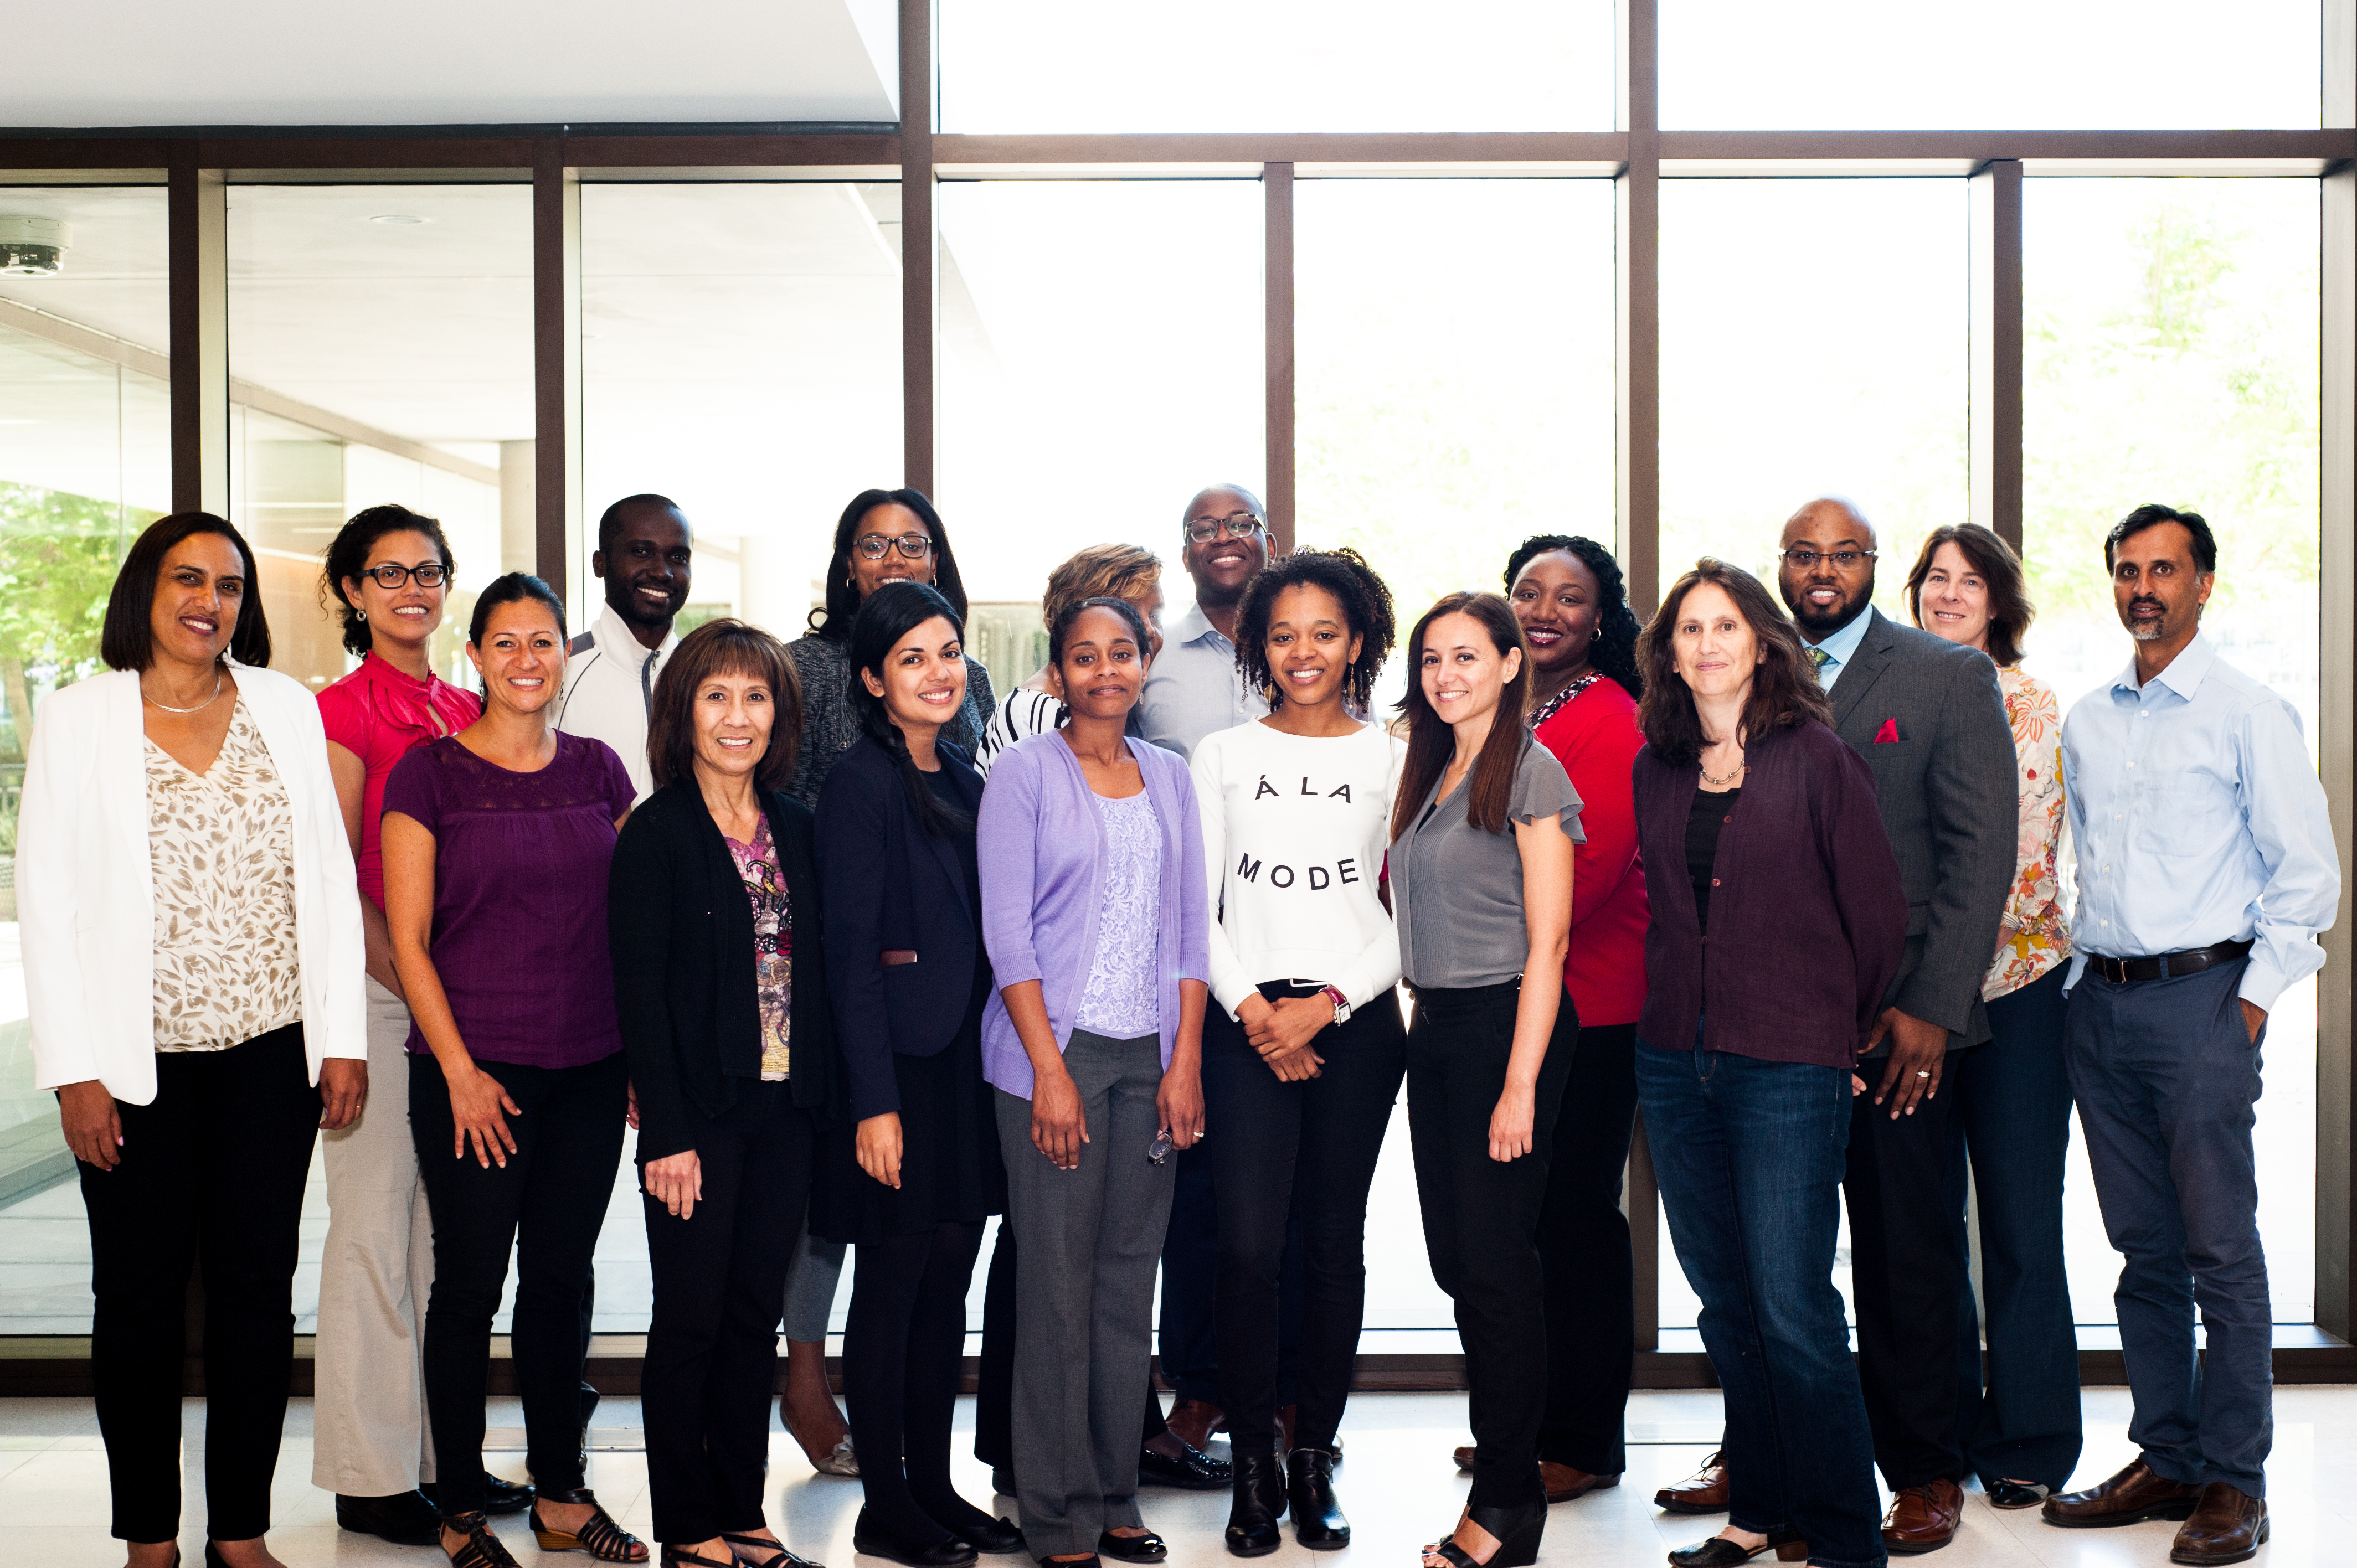 UCSF Research in Implementation Science for Equity (RISE) Program Cohort 6 of which Drs. Bender and Asiodu took part.